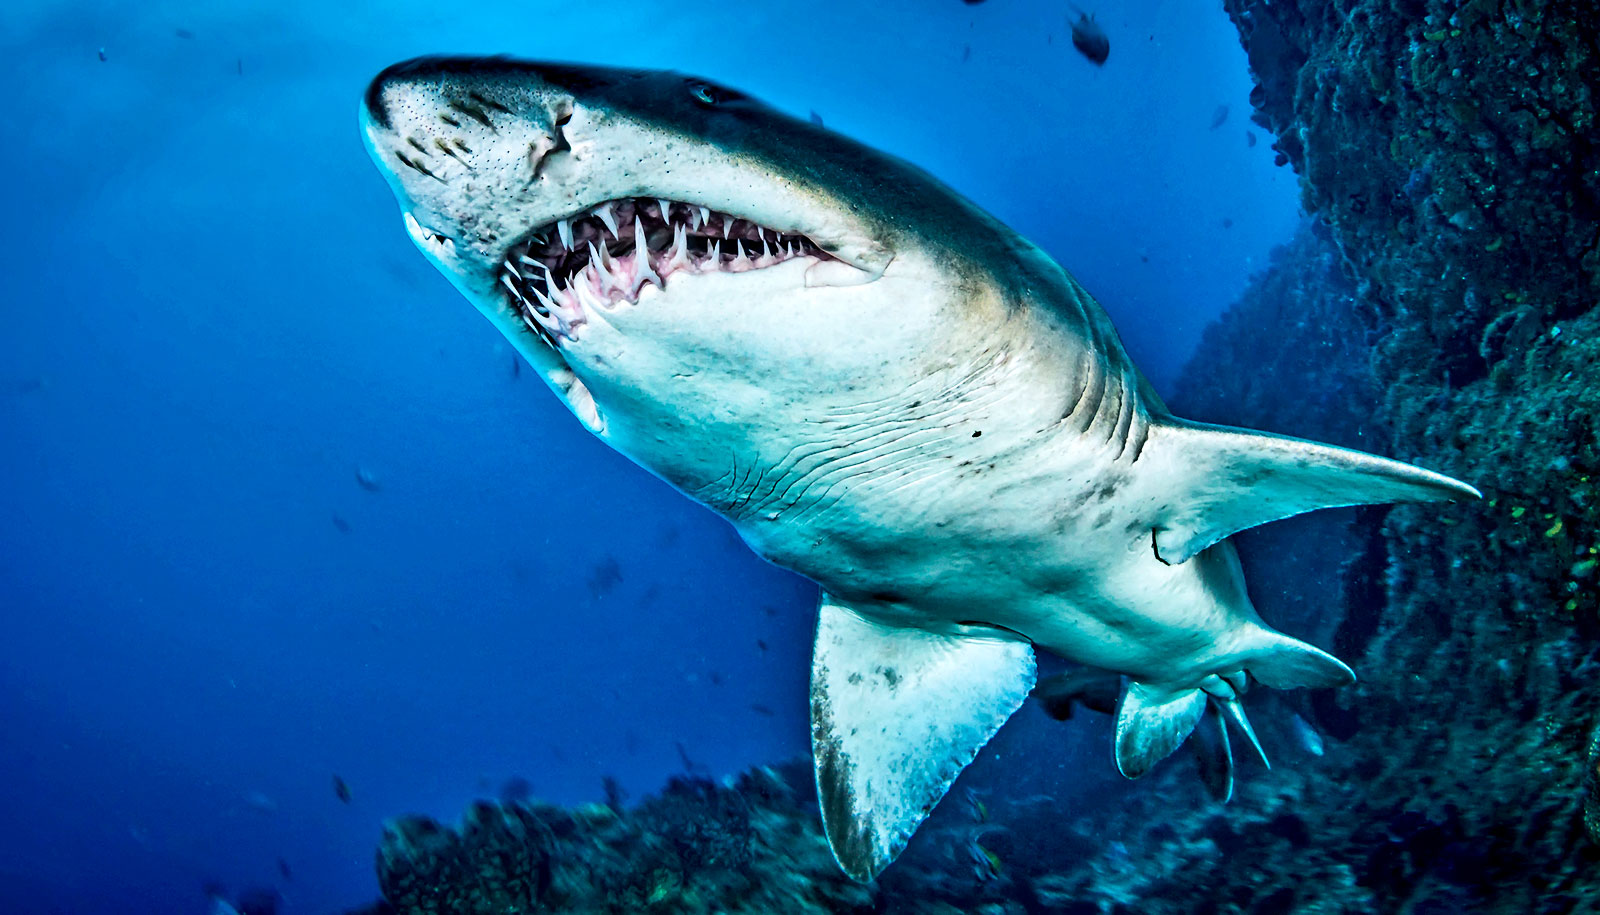 How many teeth does a shark have Counting is not amenable